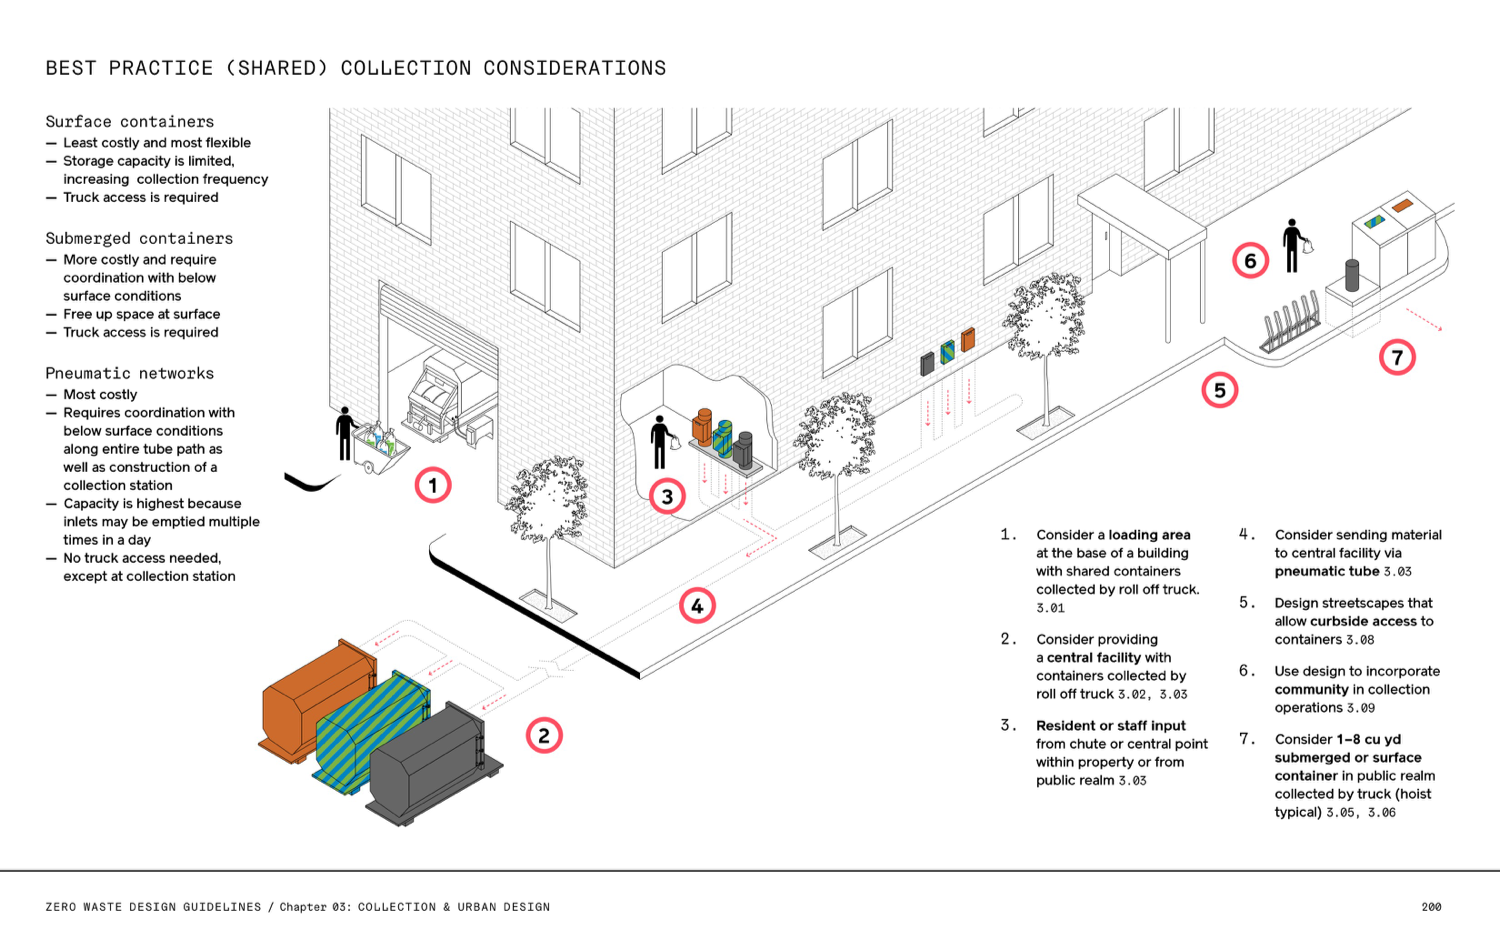 Illustration of waste collection best practises